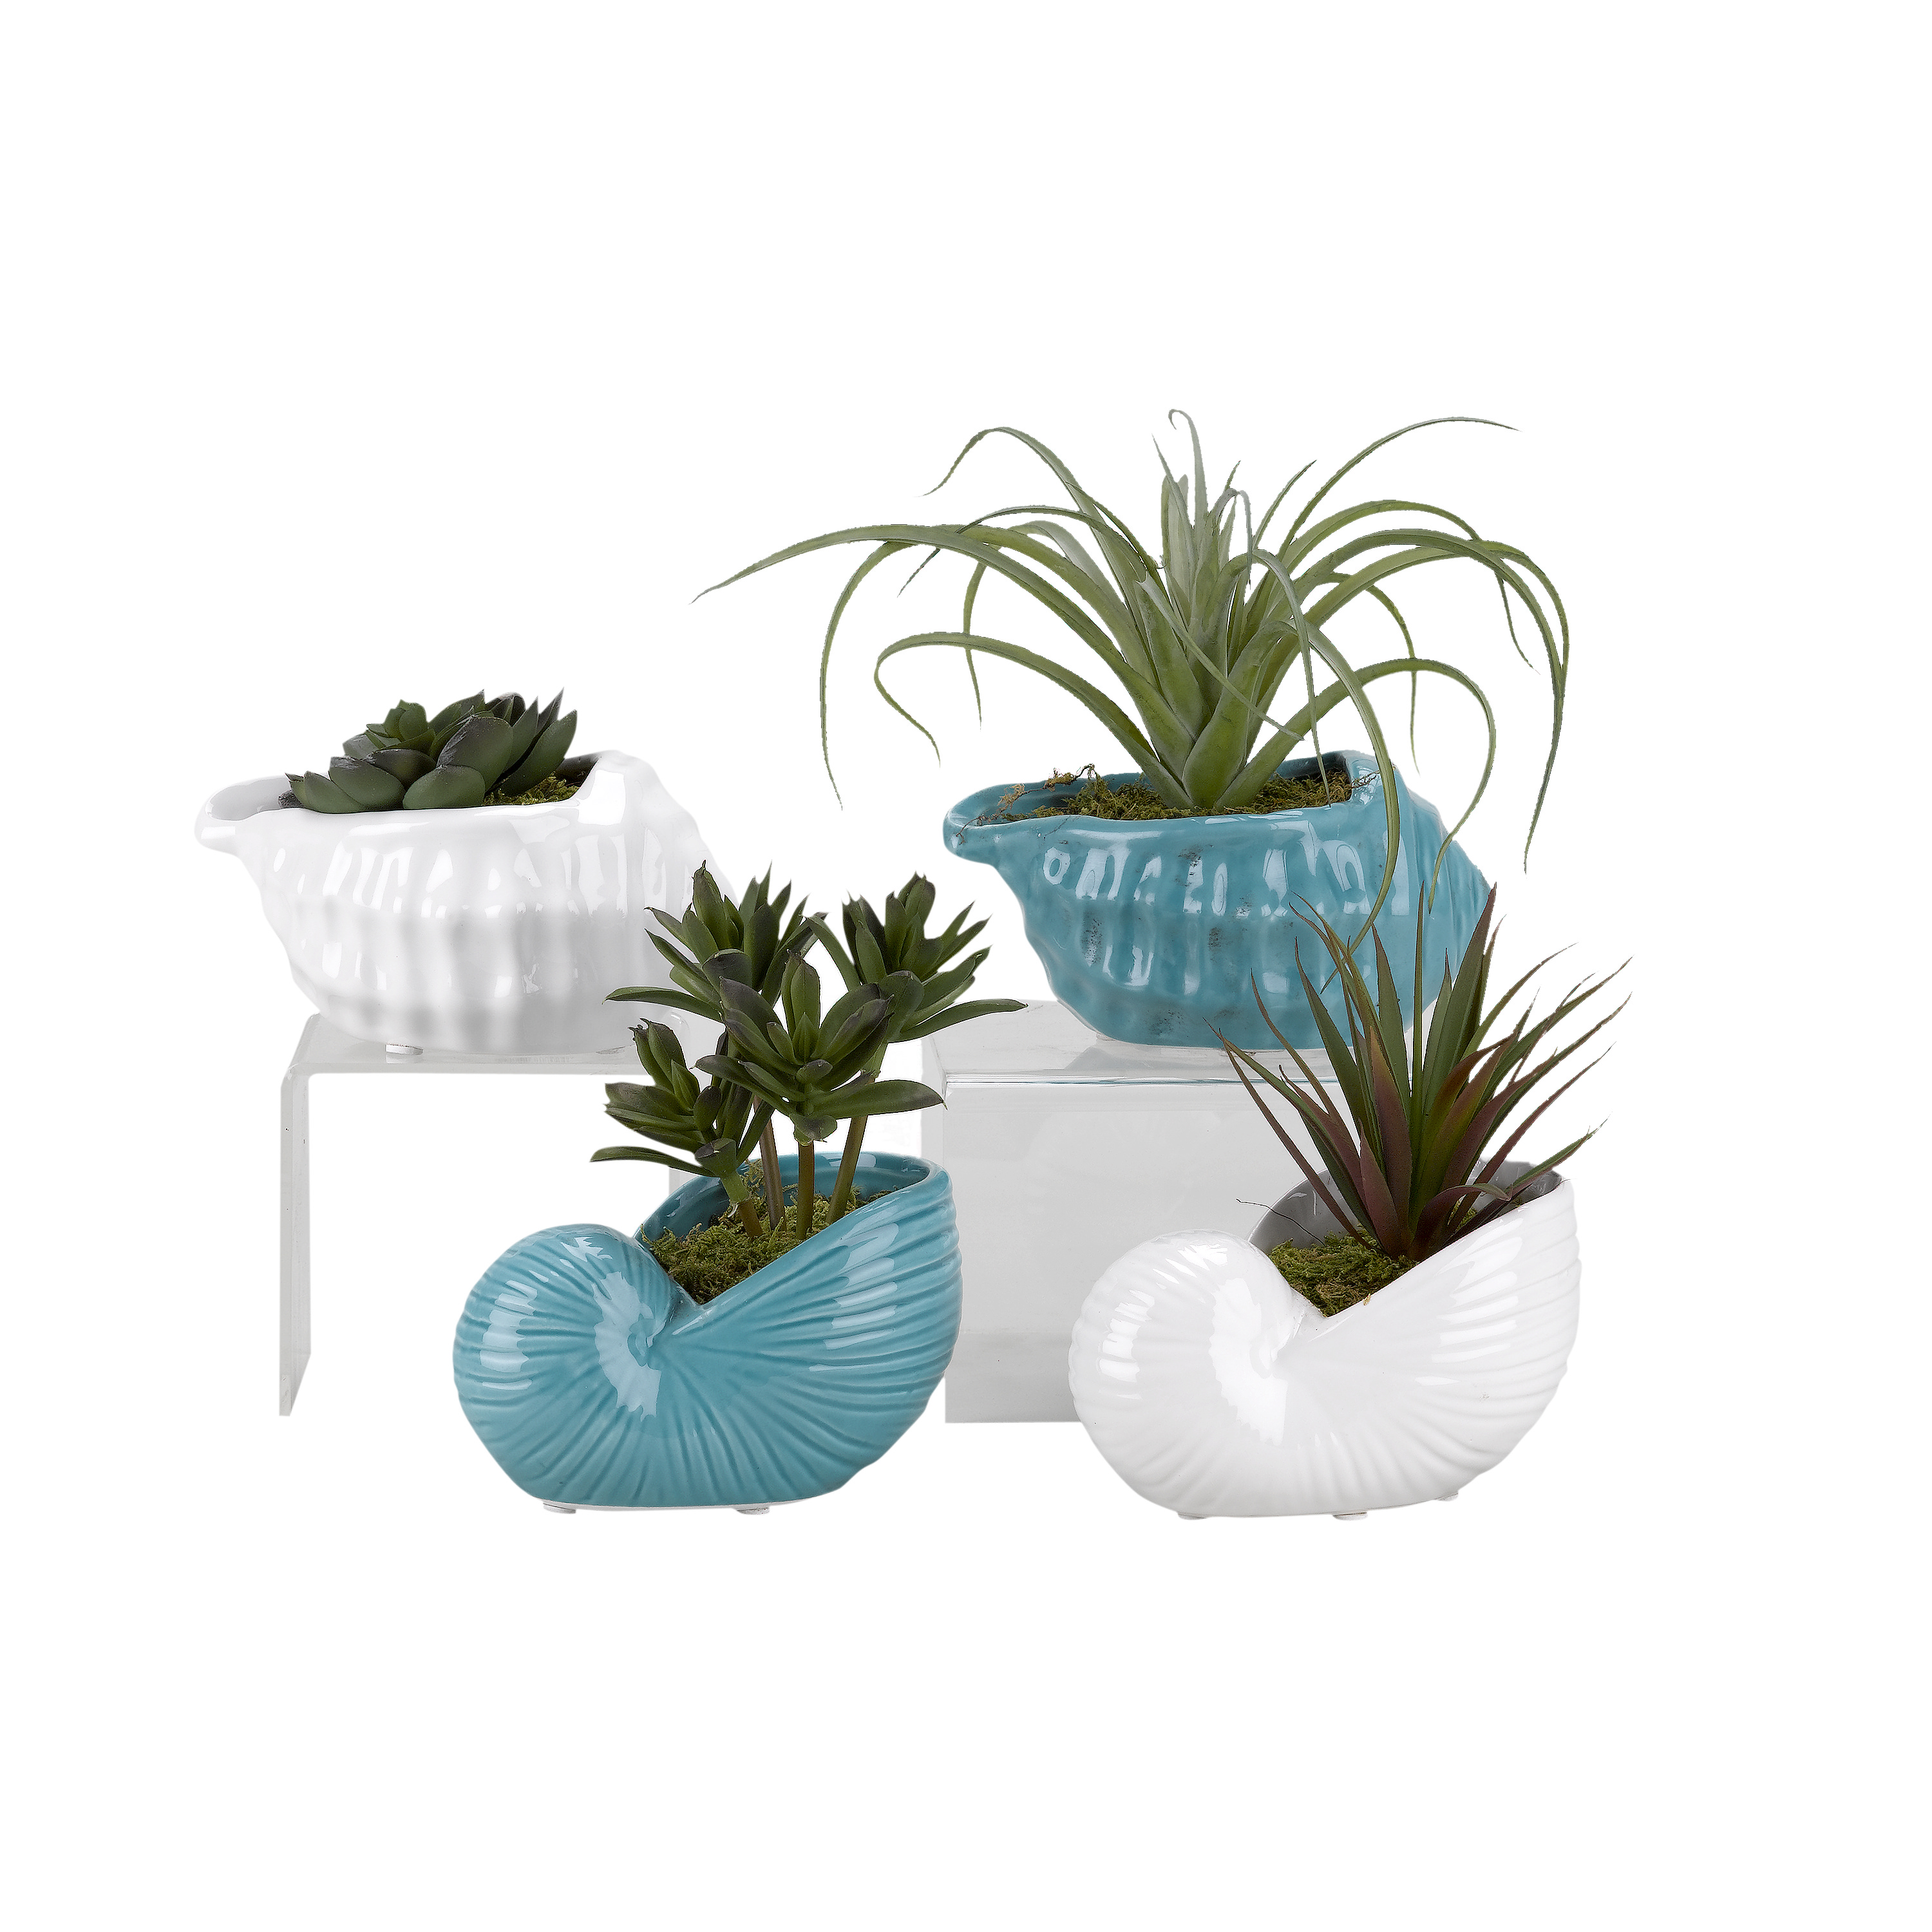 D&W Silks Mini Dracaena, Tilandsia, Succulent and Echeveria in Ceramic Shell Planters - Set of 4